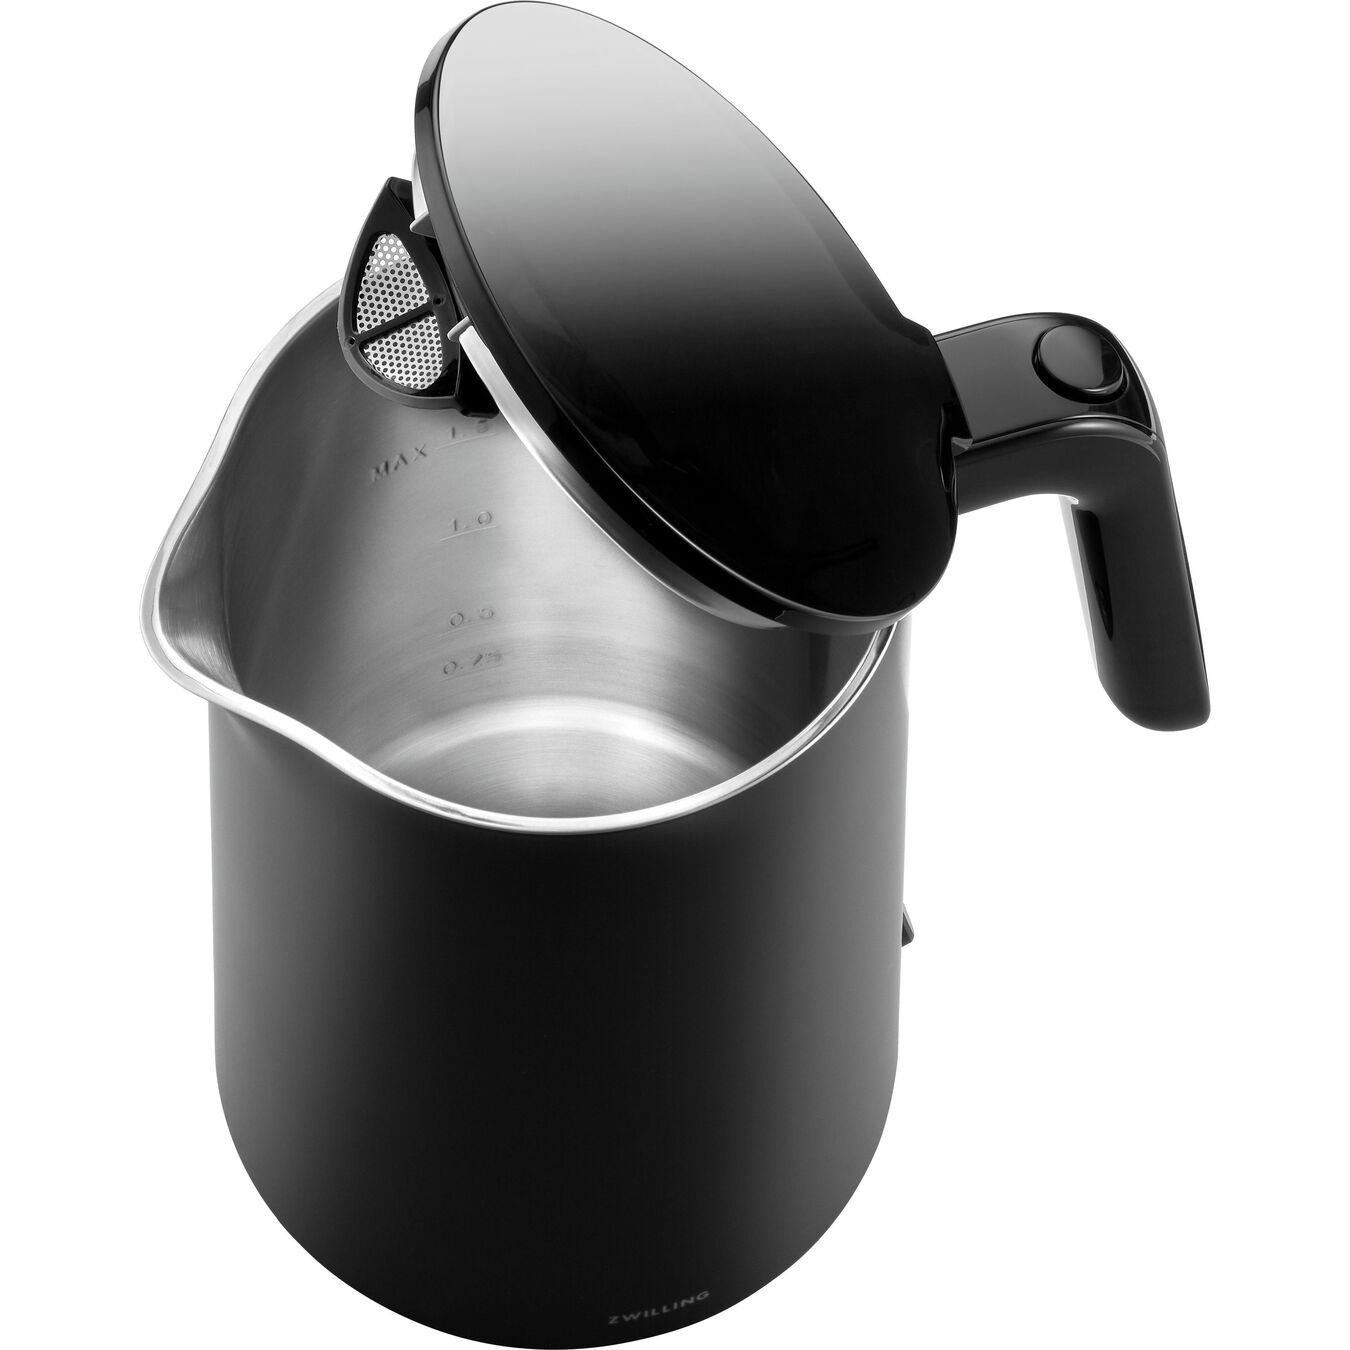 Cool Touch Kettle - Black,,large 3